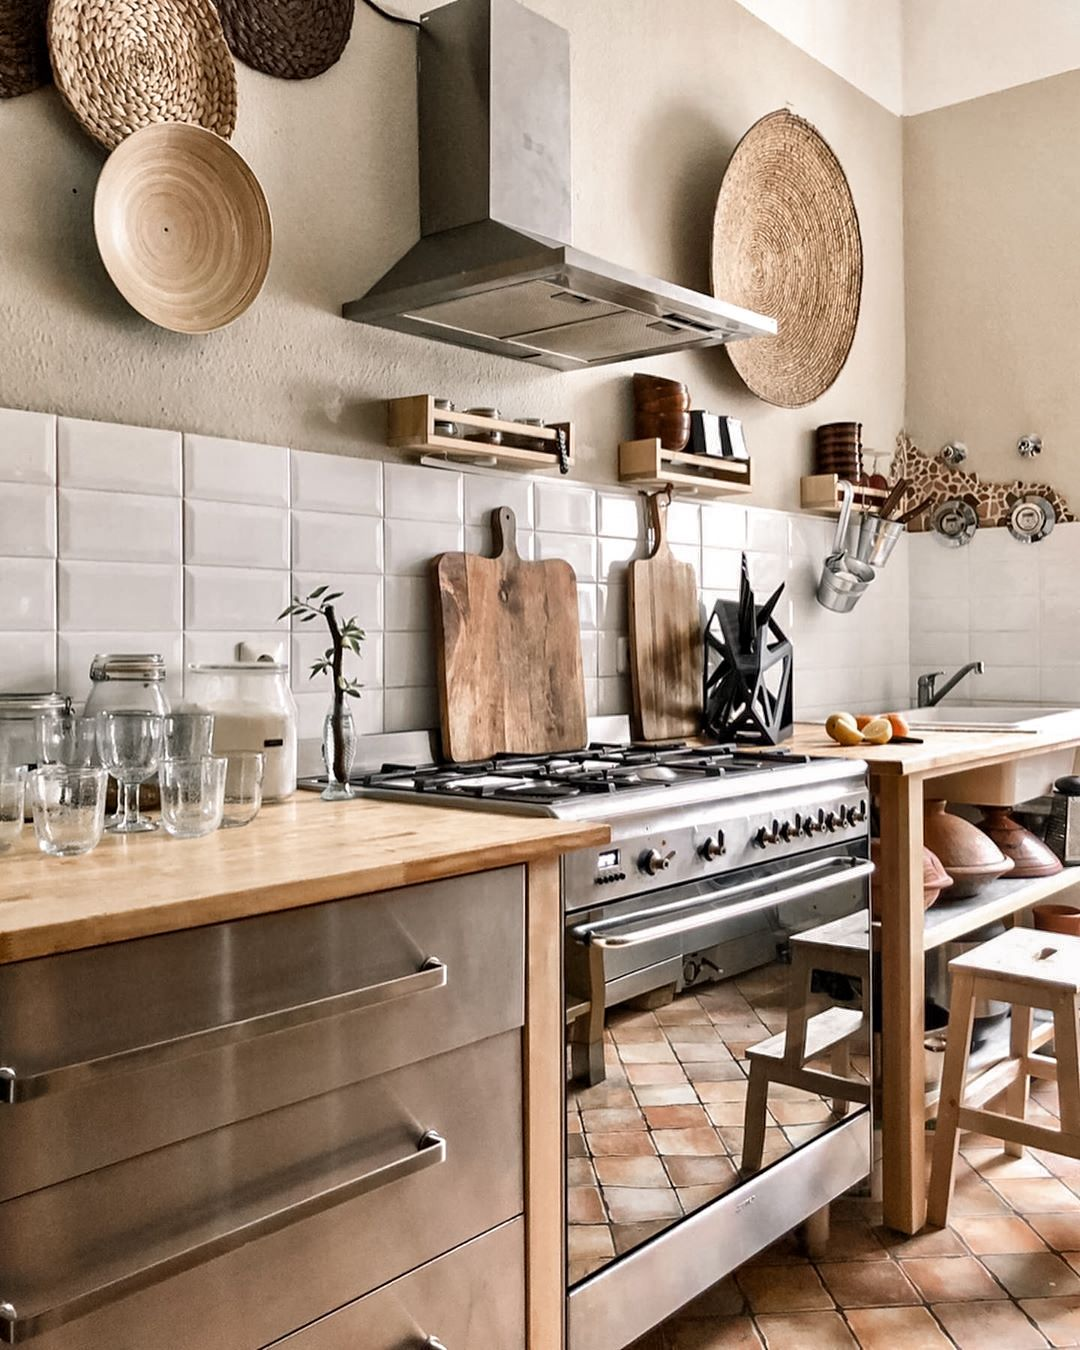 modern boho kitchens 27 chic eclectic style in 2020 boho kitchen modern boho eclectic style on boho chic home decor kitchen id=89137